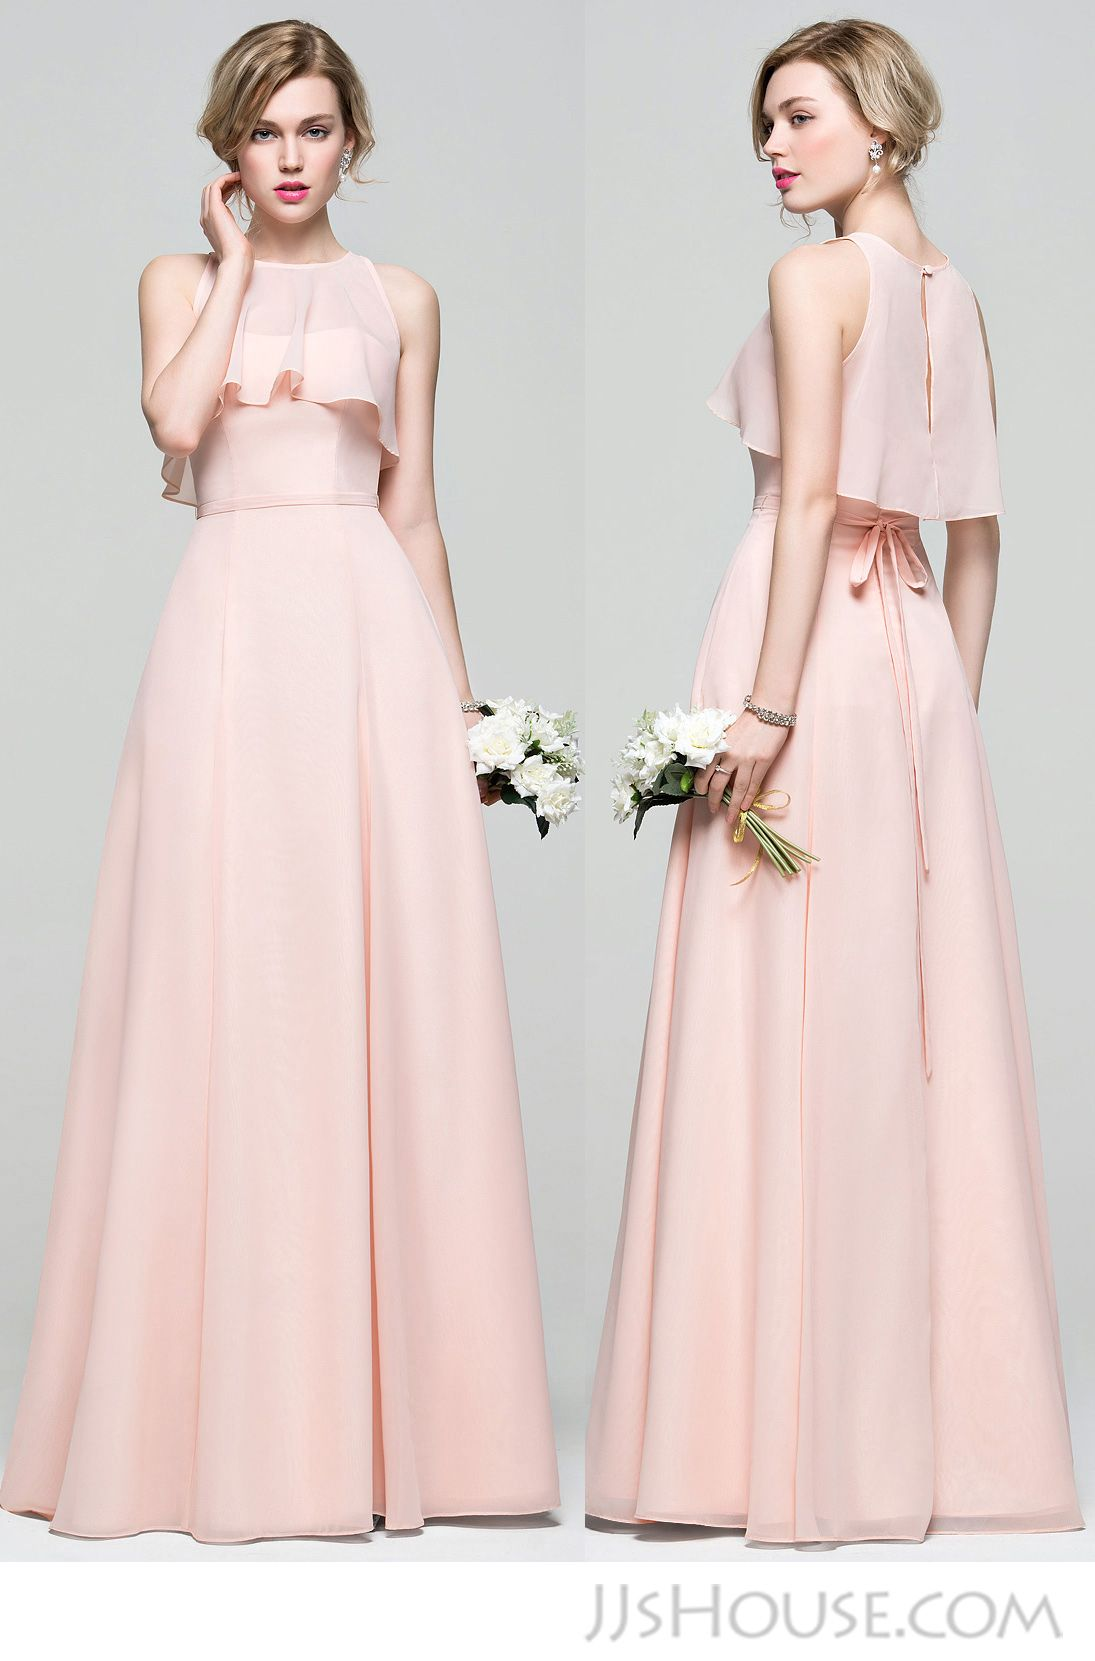 ... Simple Formal Party Dresses - Fashion. Sweet bridesmaid dress.   JJsHouse  JJsHouseBridesmaidDress 9b7021288510